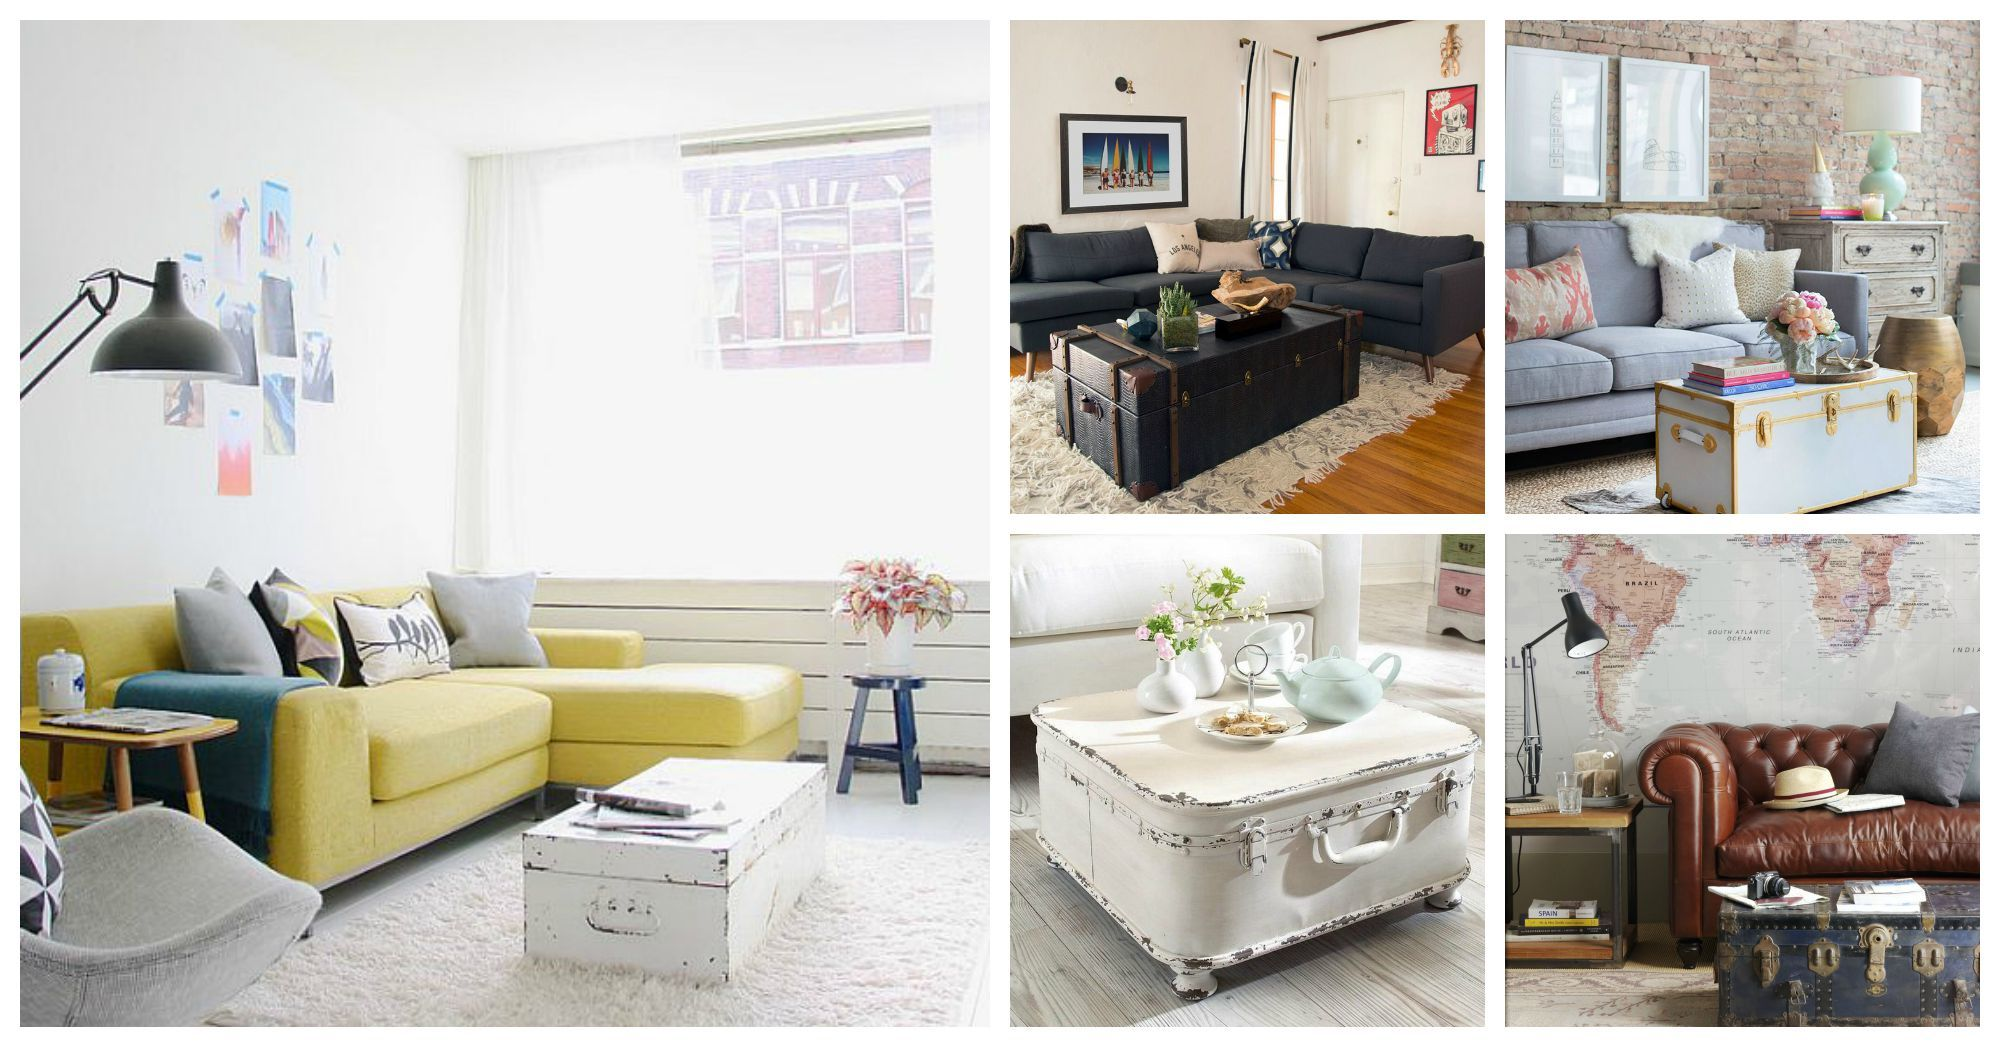 12 Fascinating Ways To Turn Old Trunks Into Amazing Coffee Tables